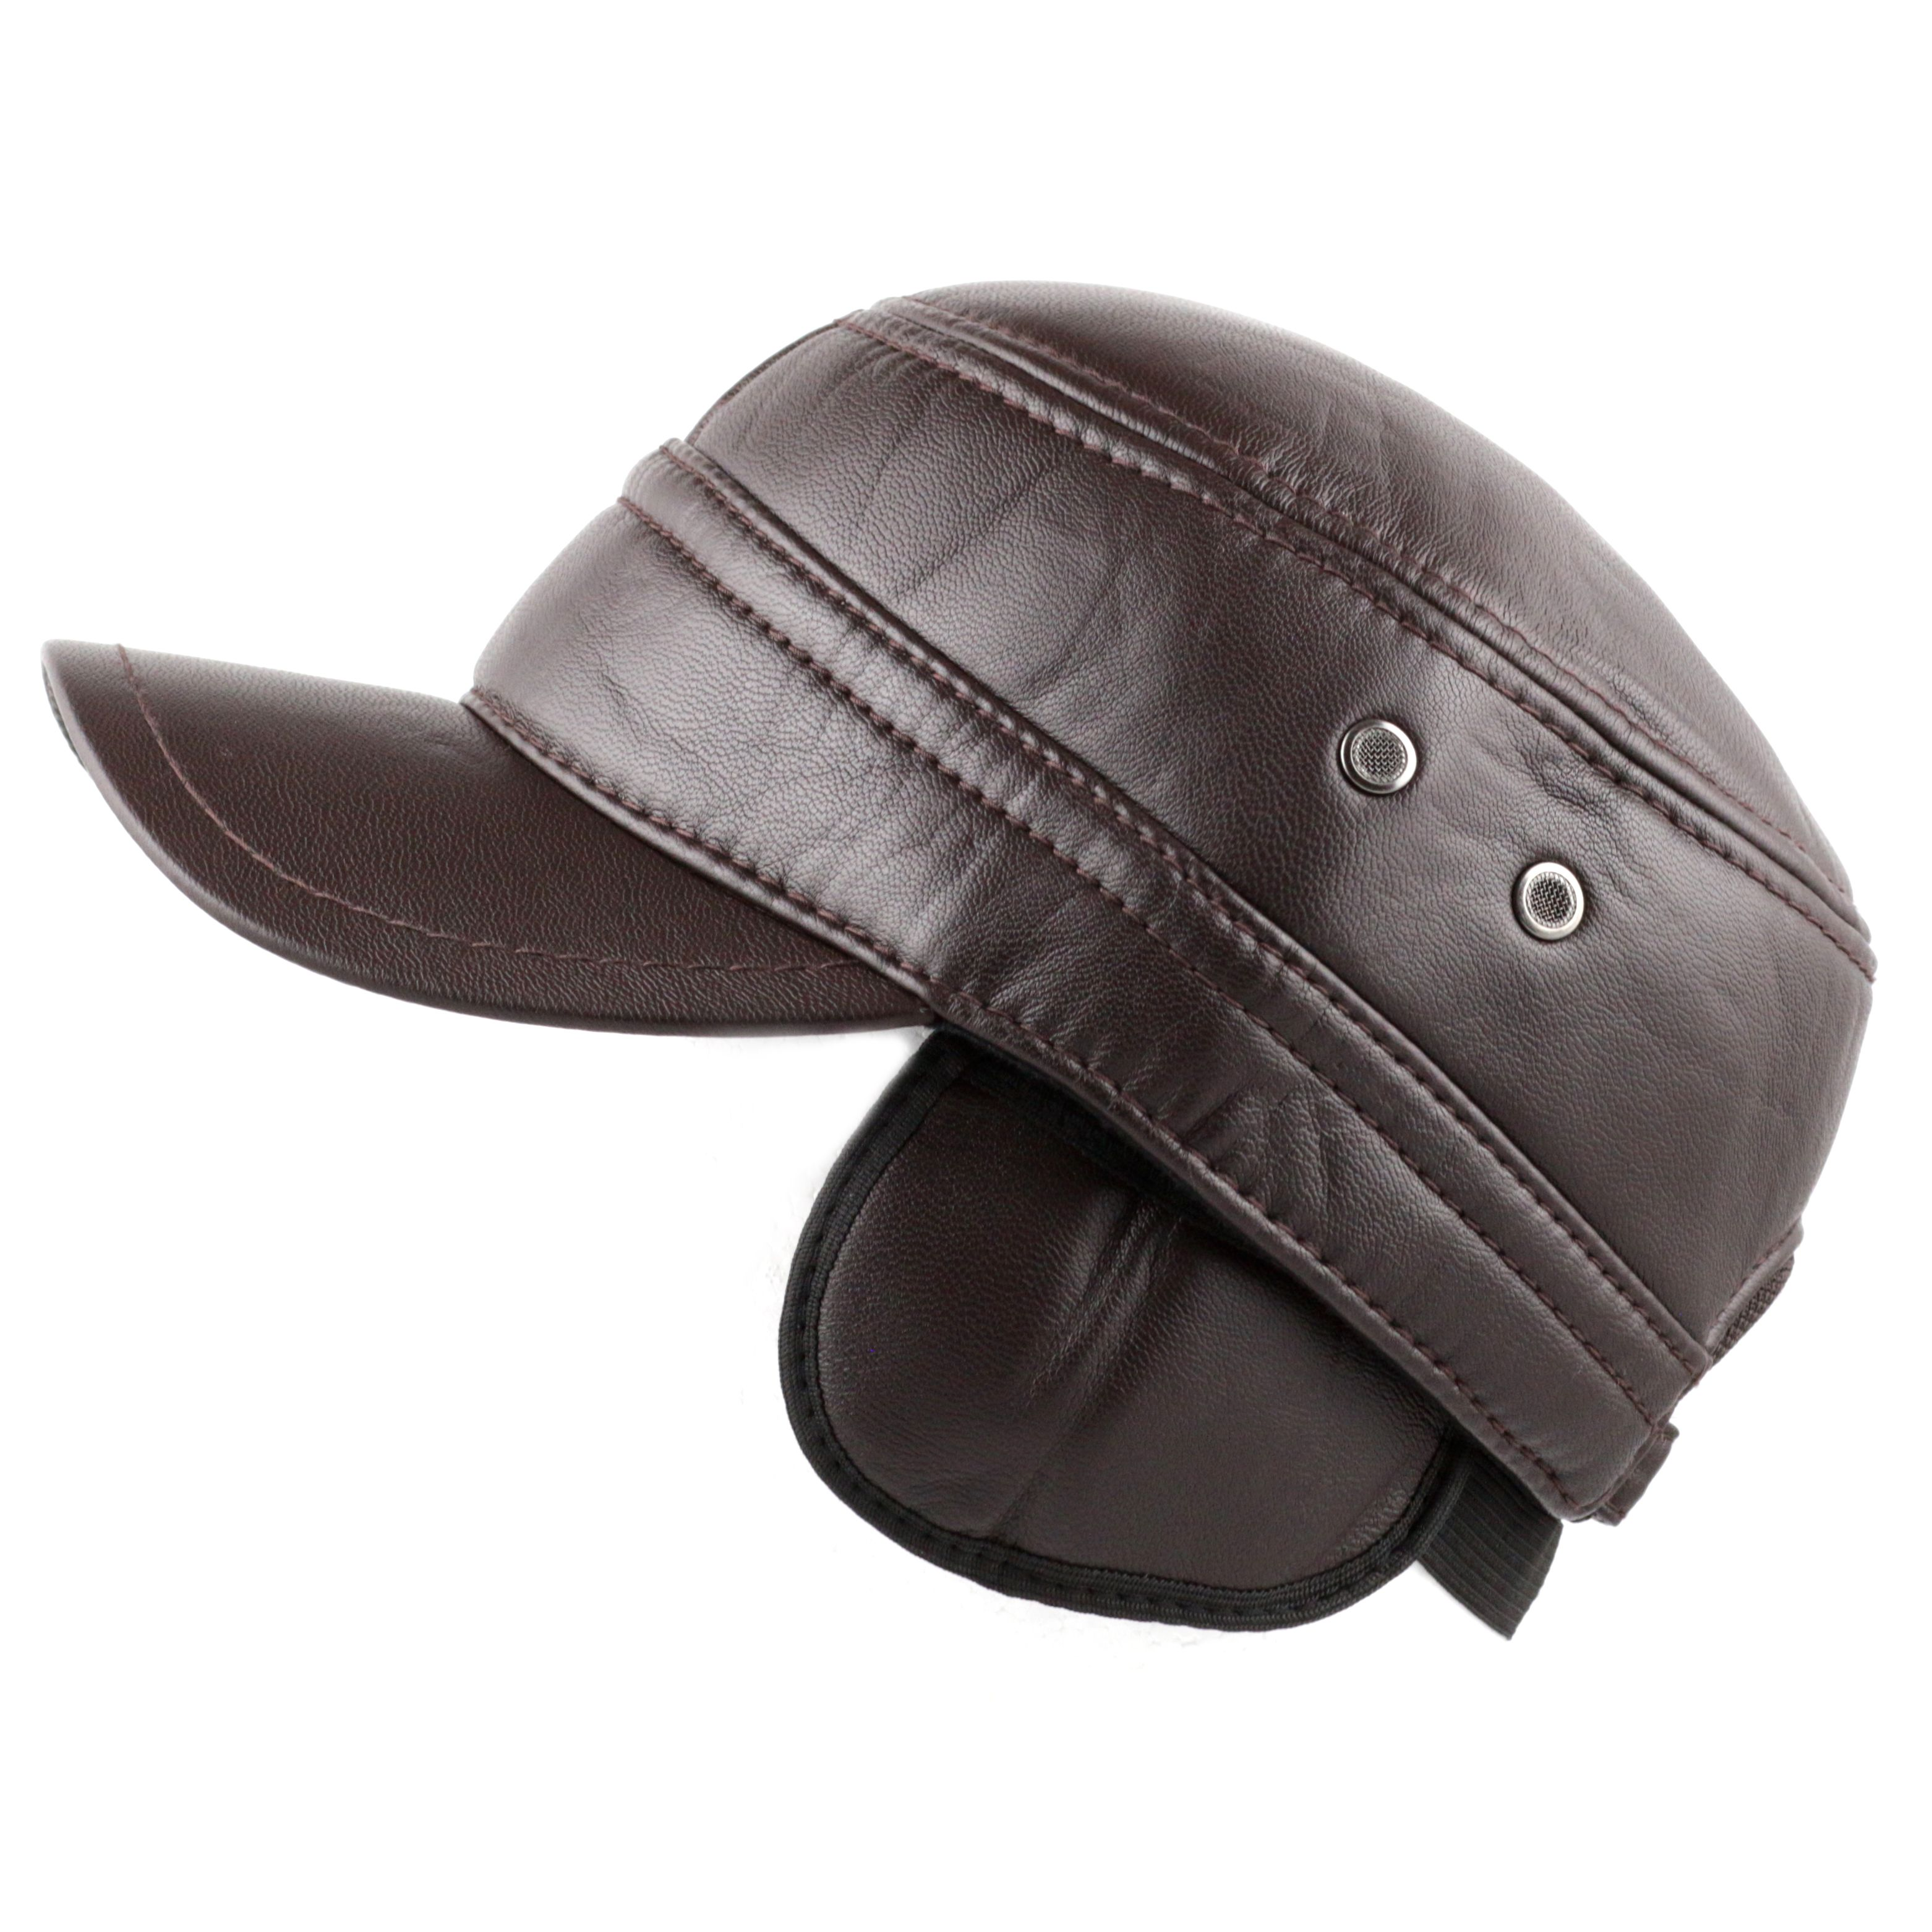 604b857f64328e Faux Leather Cadet Cap with Hidden Ear Flaps | Hats, Bags and Purses ...